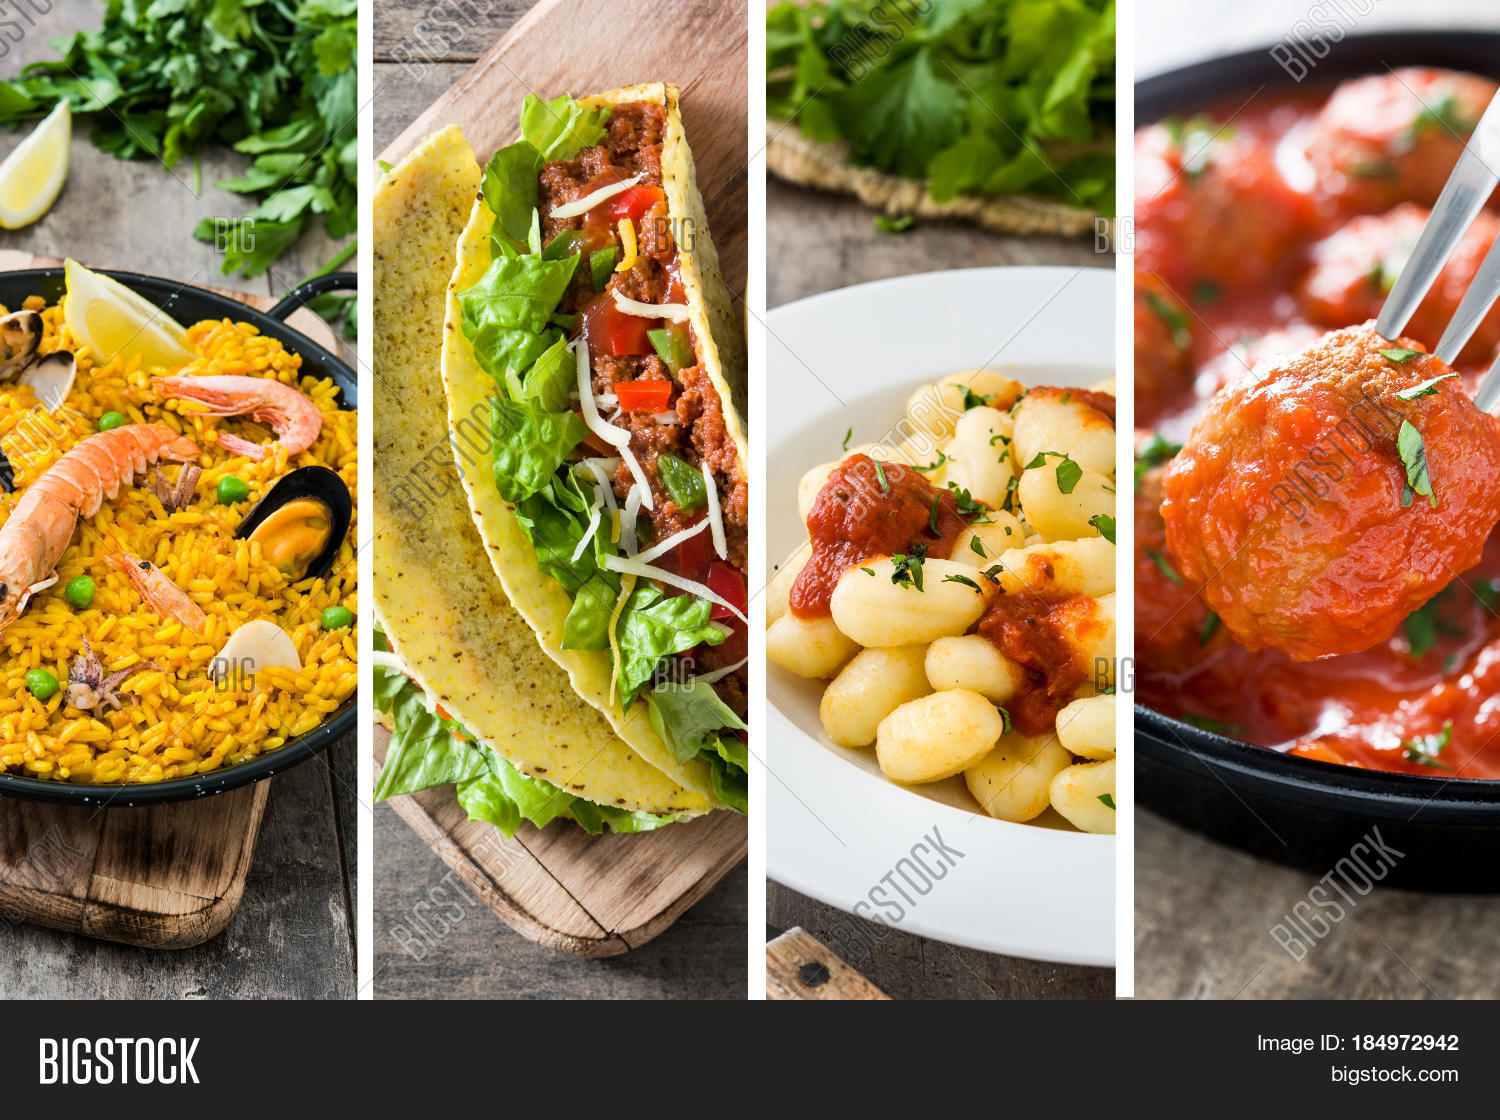 Collage Different Delicious Food Image & Photo | Bigstock